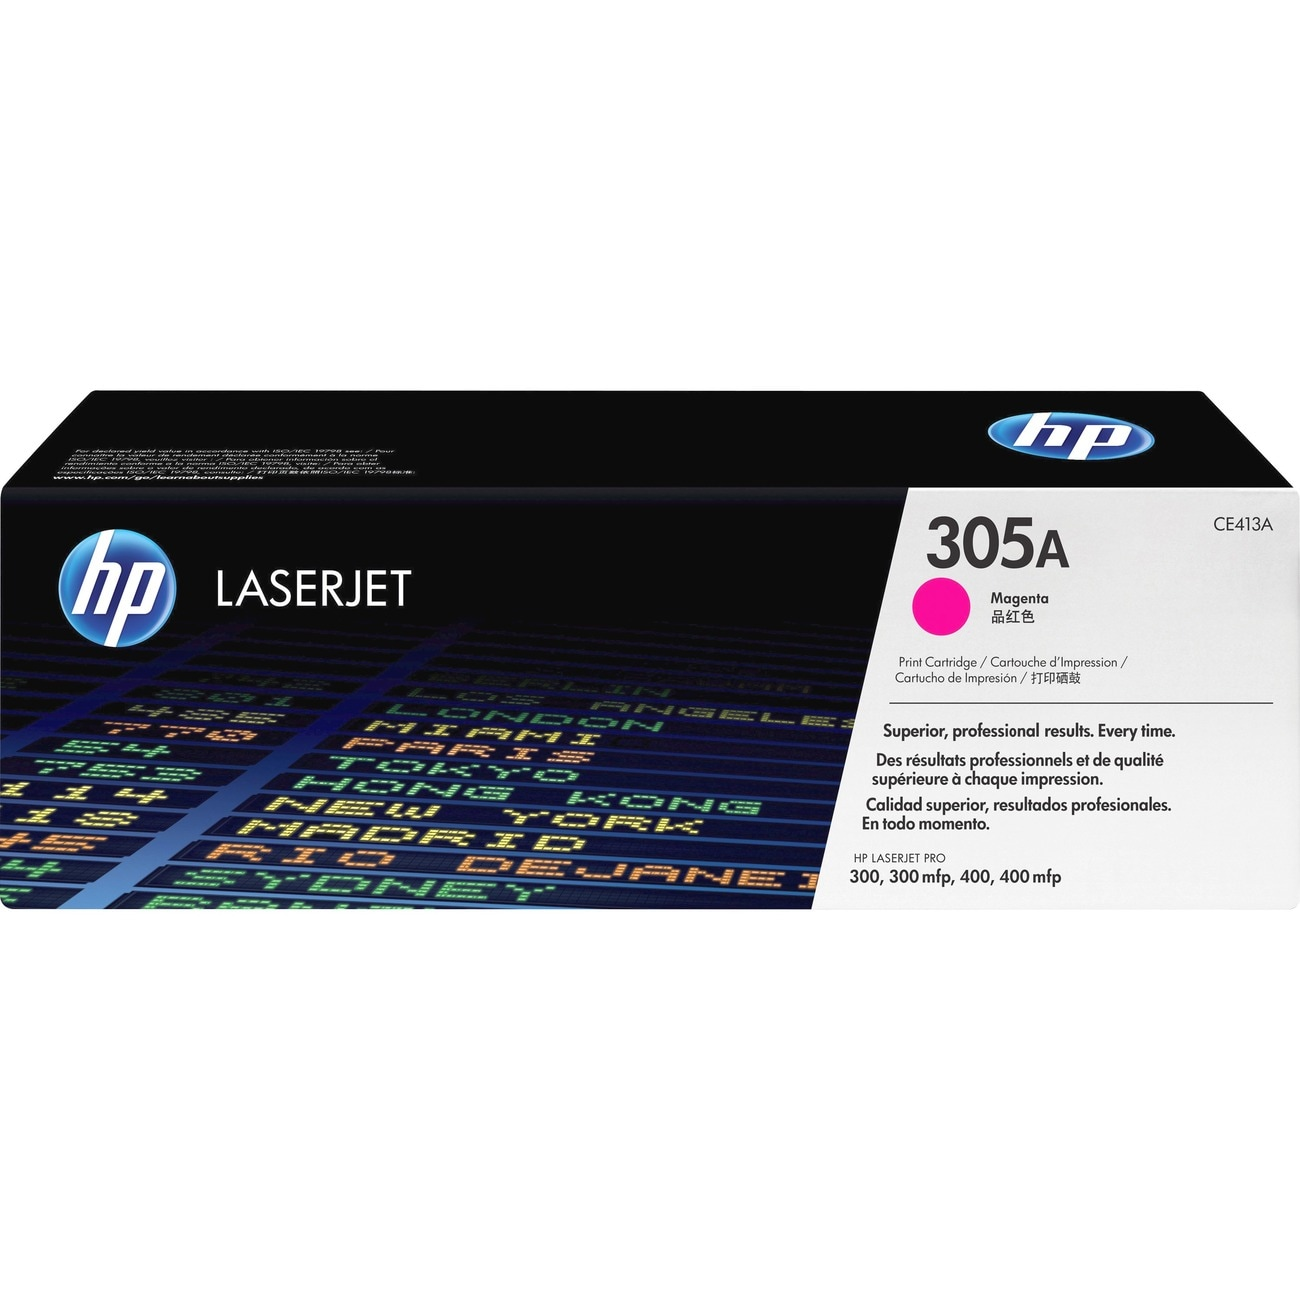 HP 305A Magenta Toner Cartridge for HP LaserJet Pro Printers